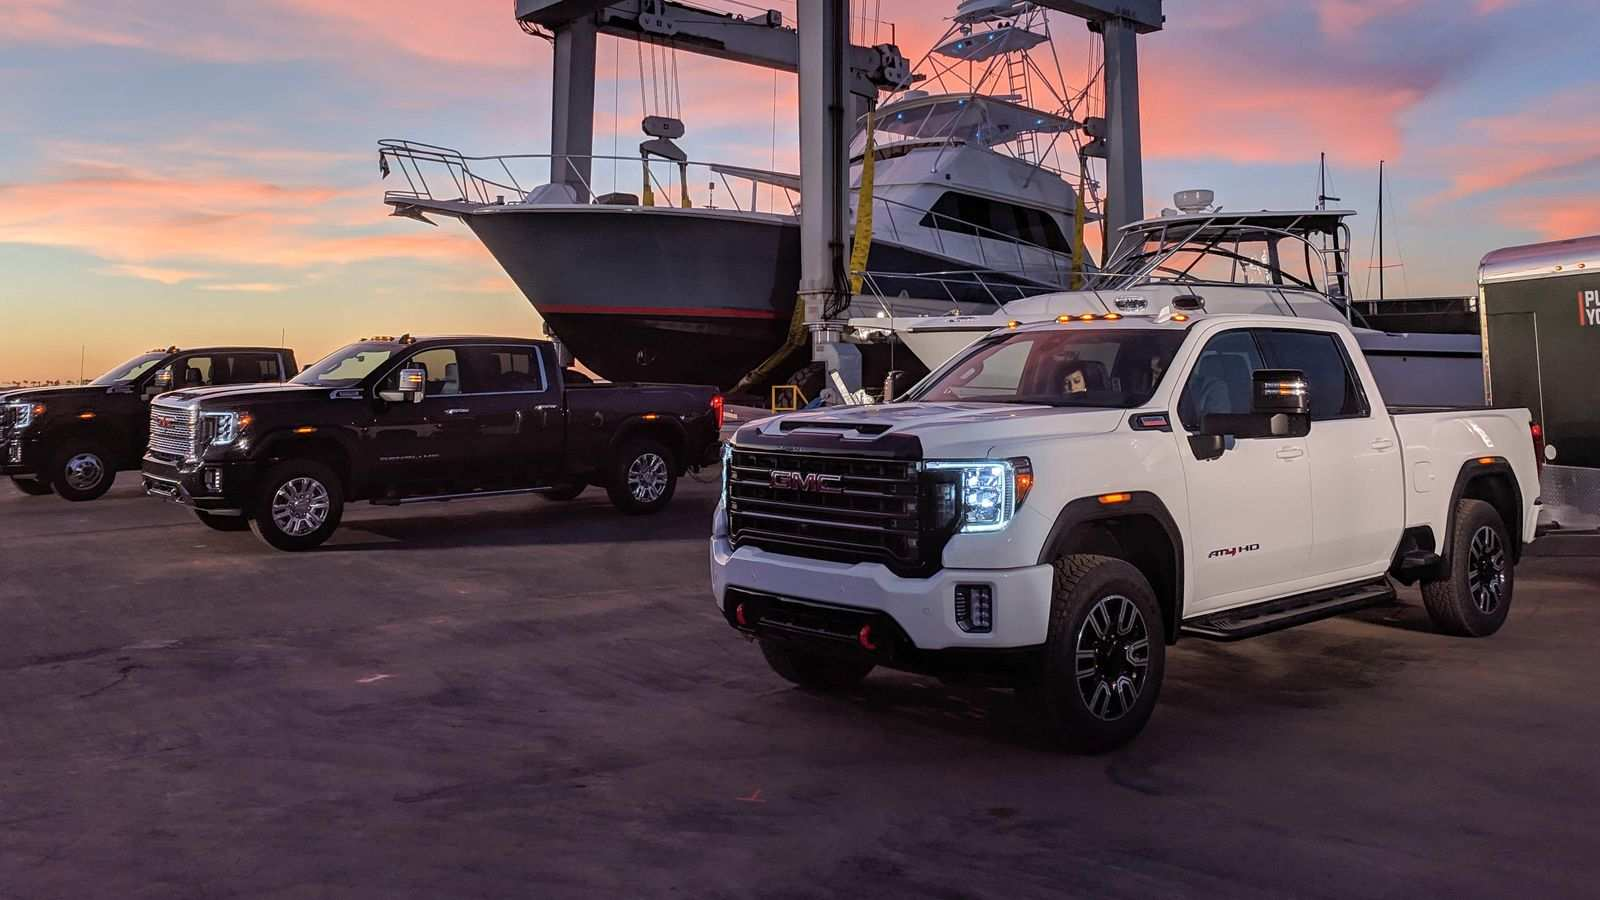 59 All New 2020 Gmc Sierra 2500 Engine Options Spy Shoot for 2020 Gmc Sierra 2500 Engine Options